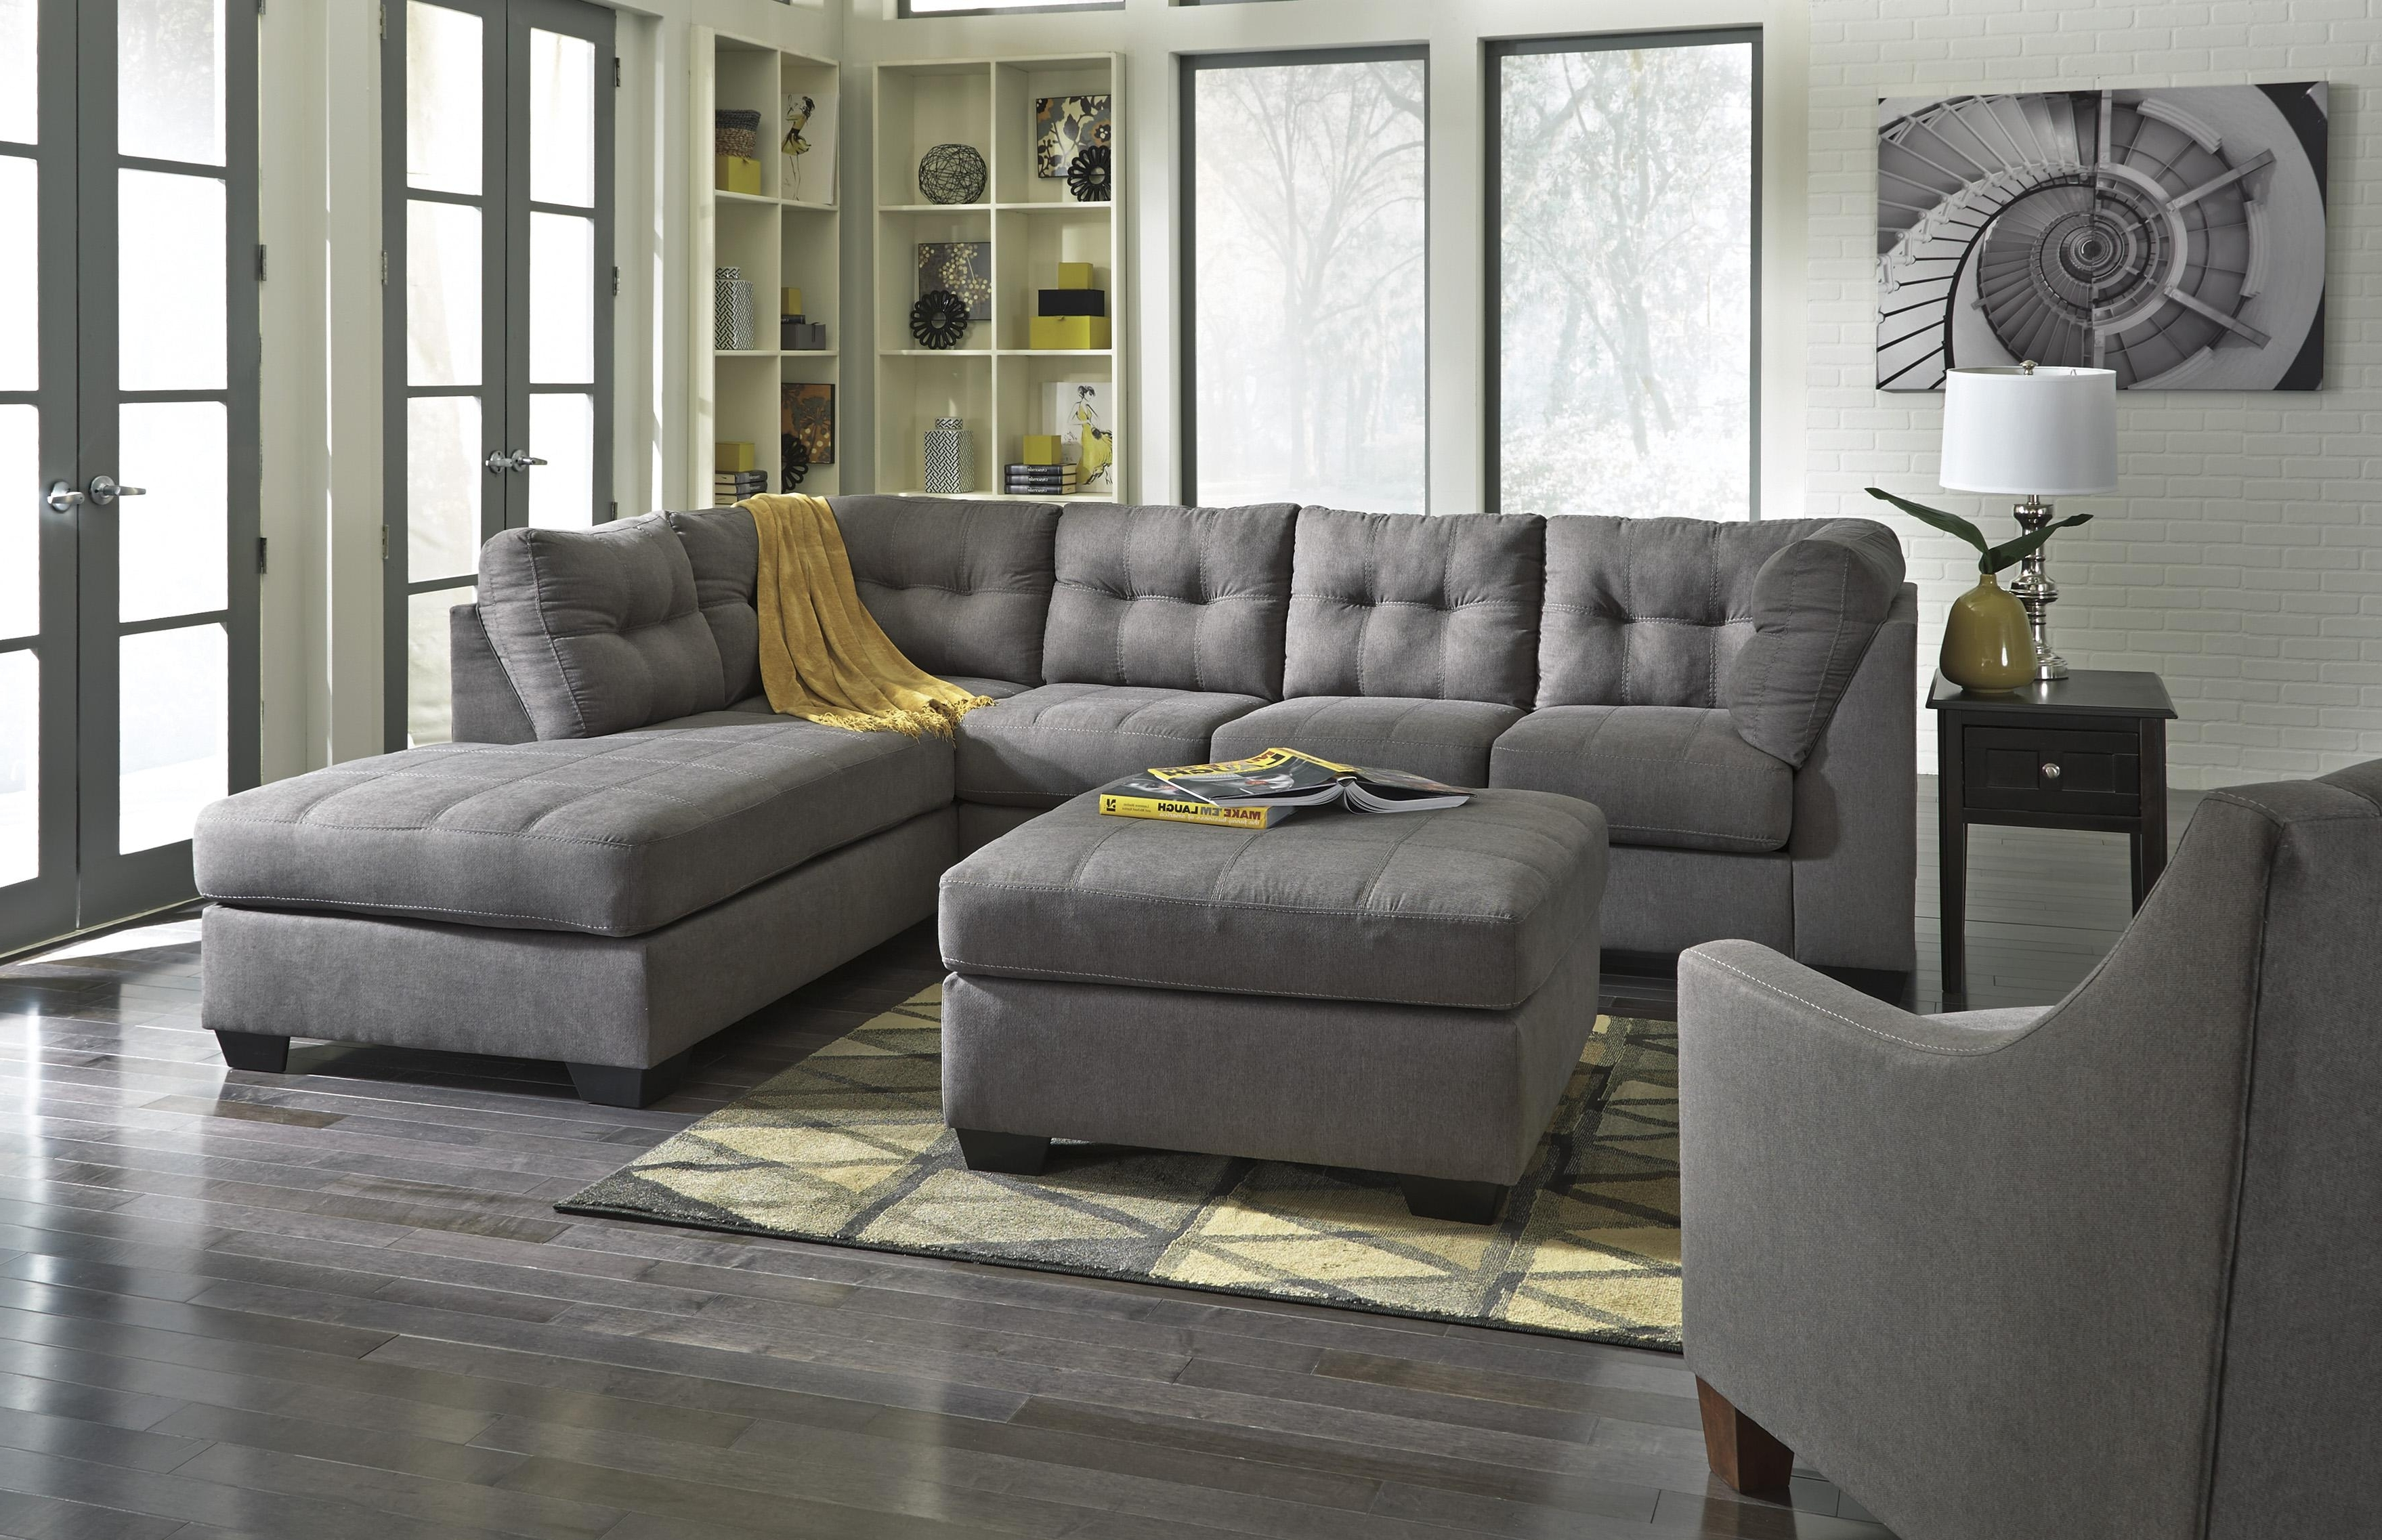 Sectionals With Ottoman And Chaise Intended For Latest Benchcraft Maier – Charcoal 2 Piece Sectional With Right Chaise (View 7 of 15)